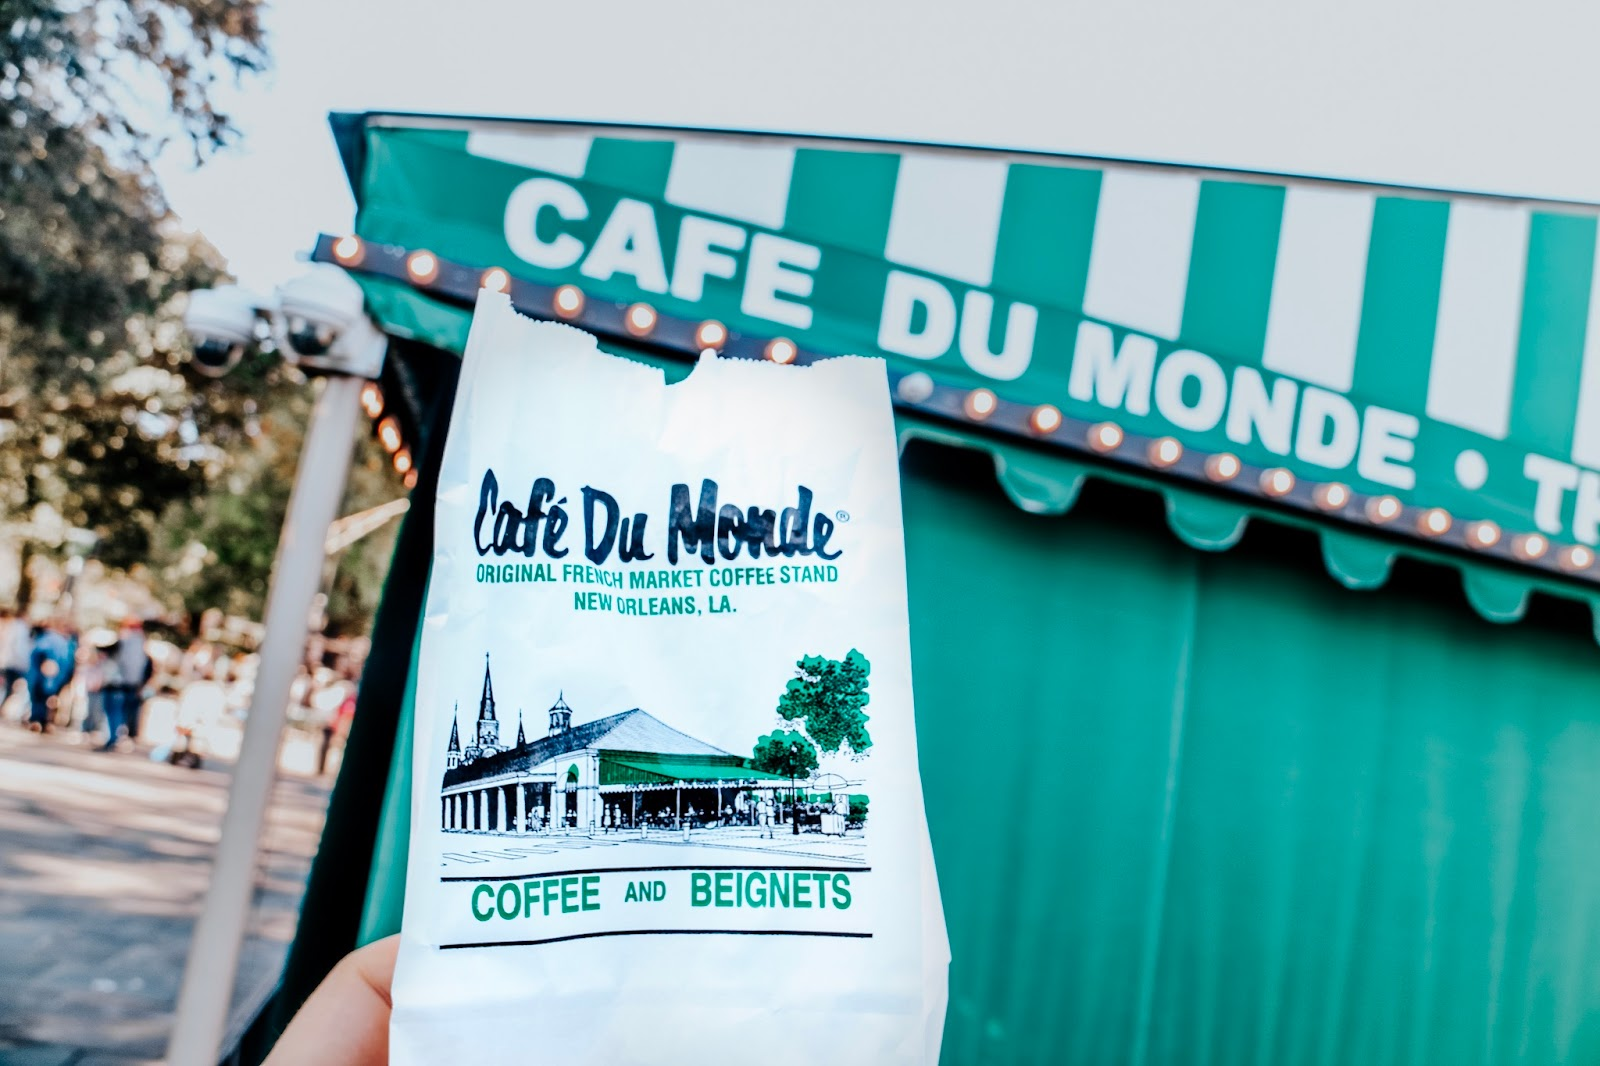 To go bag of beignets at Cafe du Monde in New Orleans